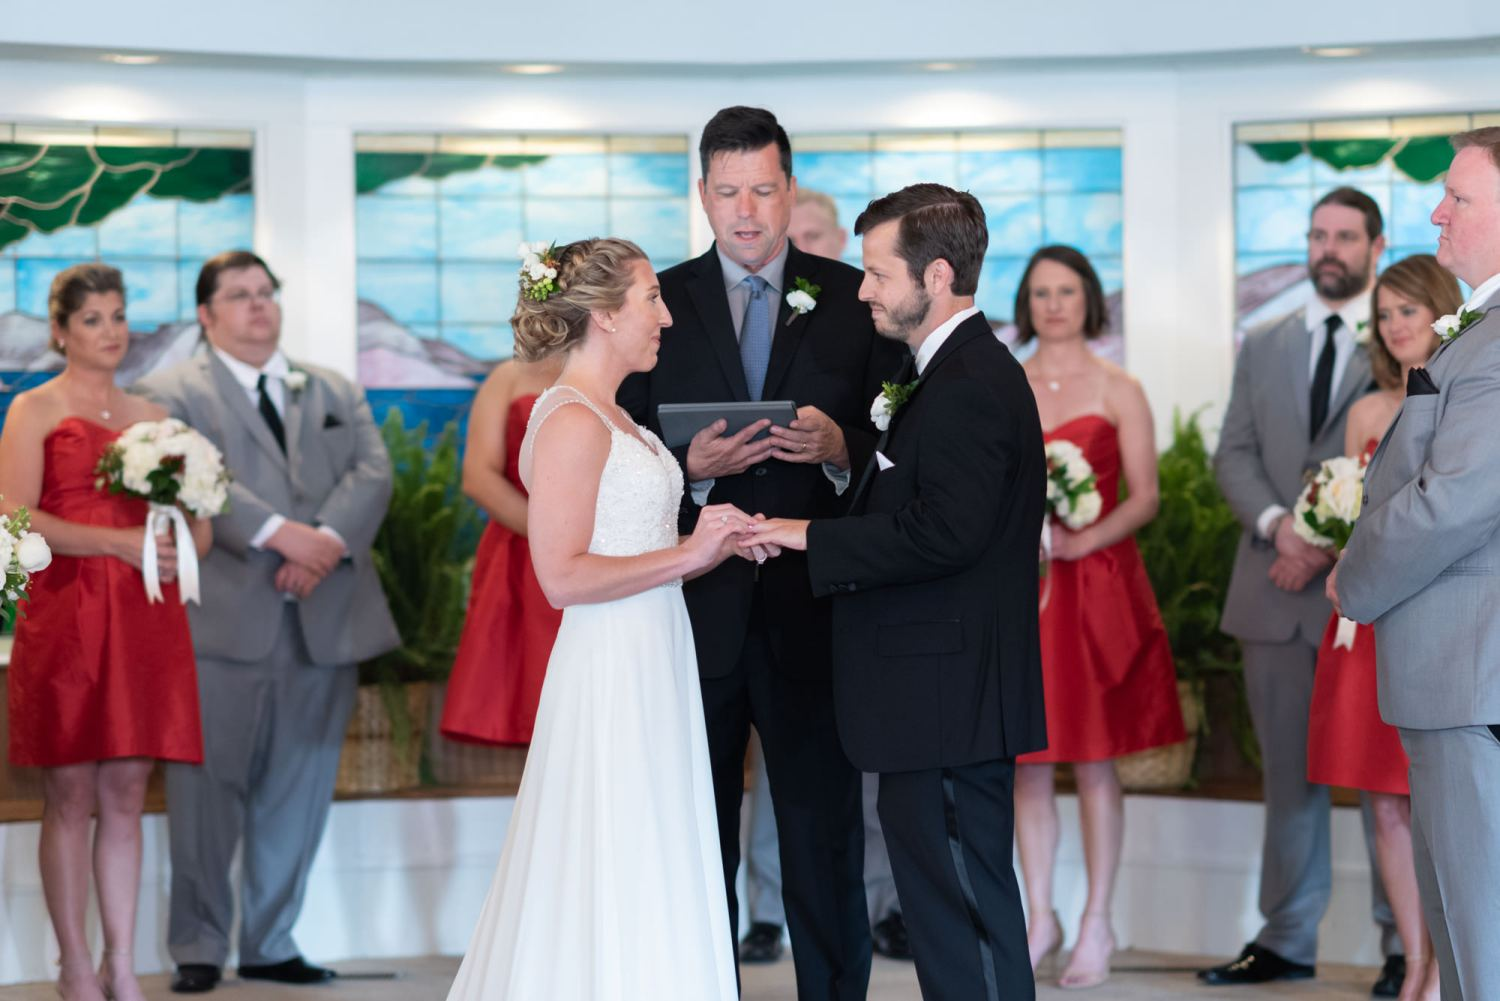 Bride and groom exchanging rings - Pawleys Island Community Chapel